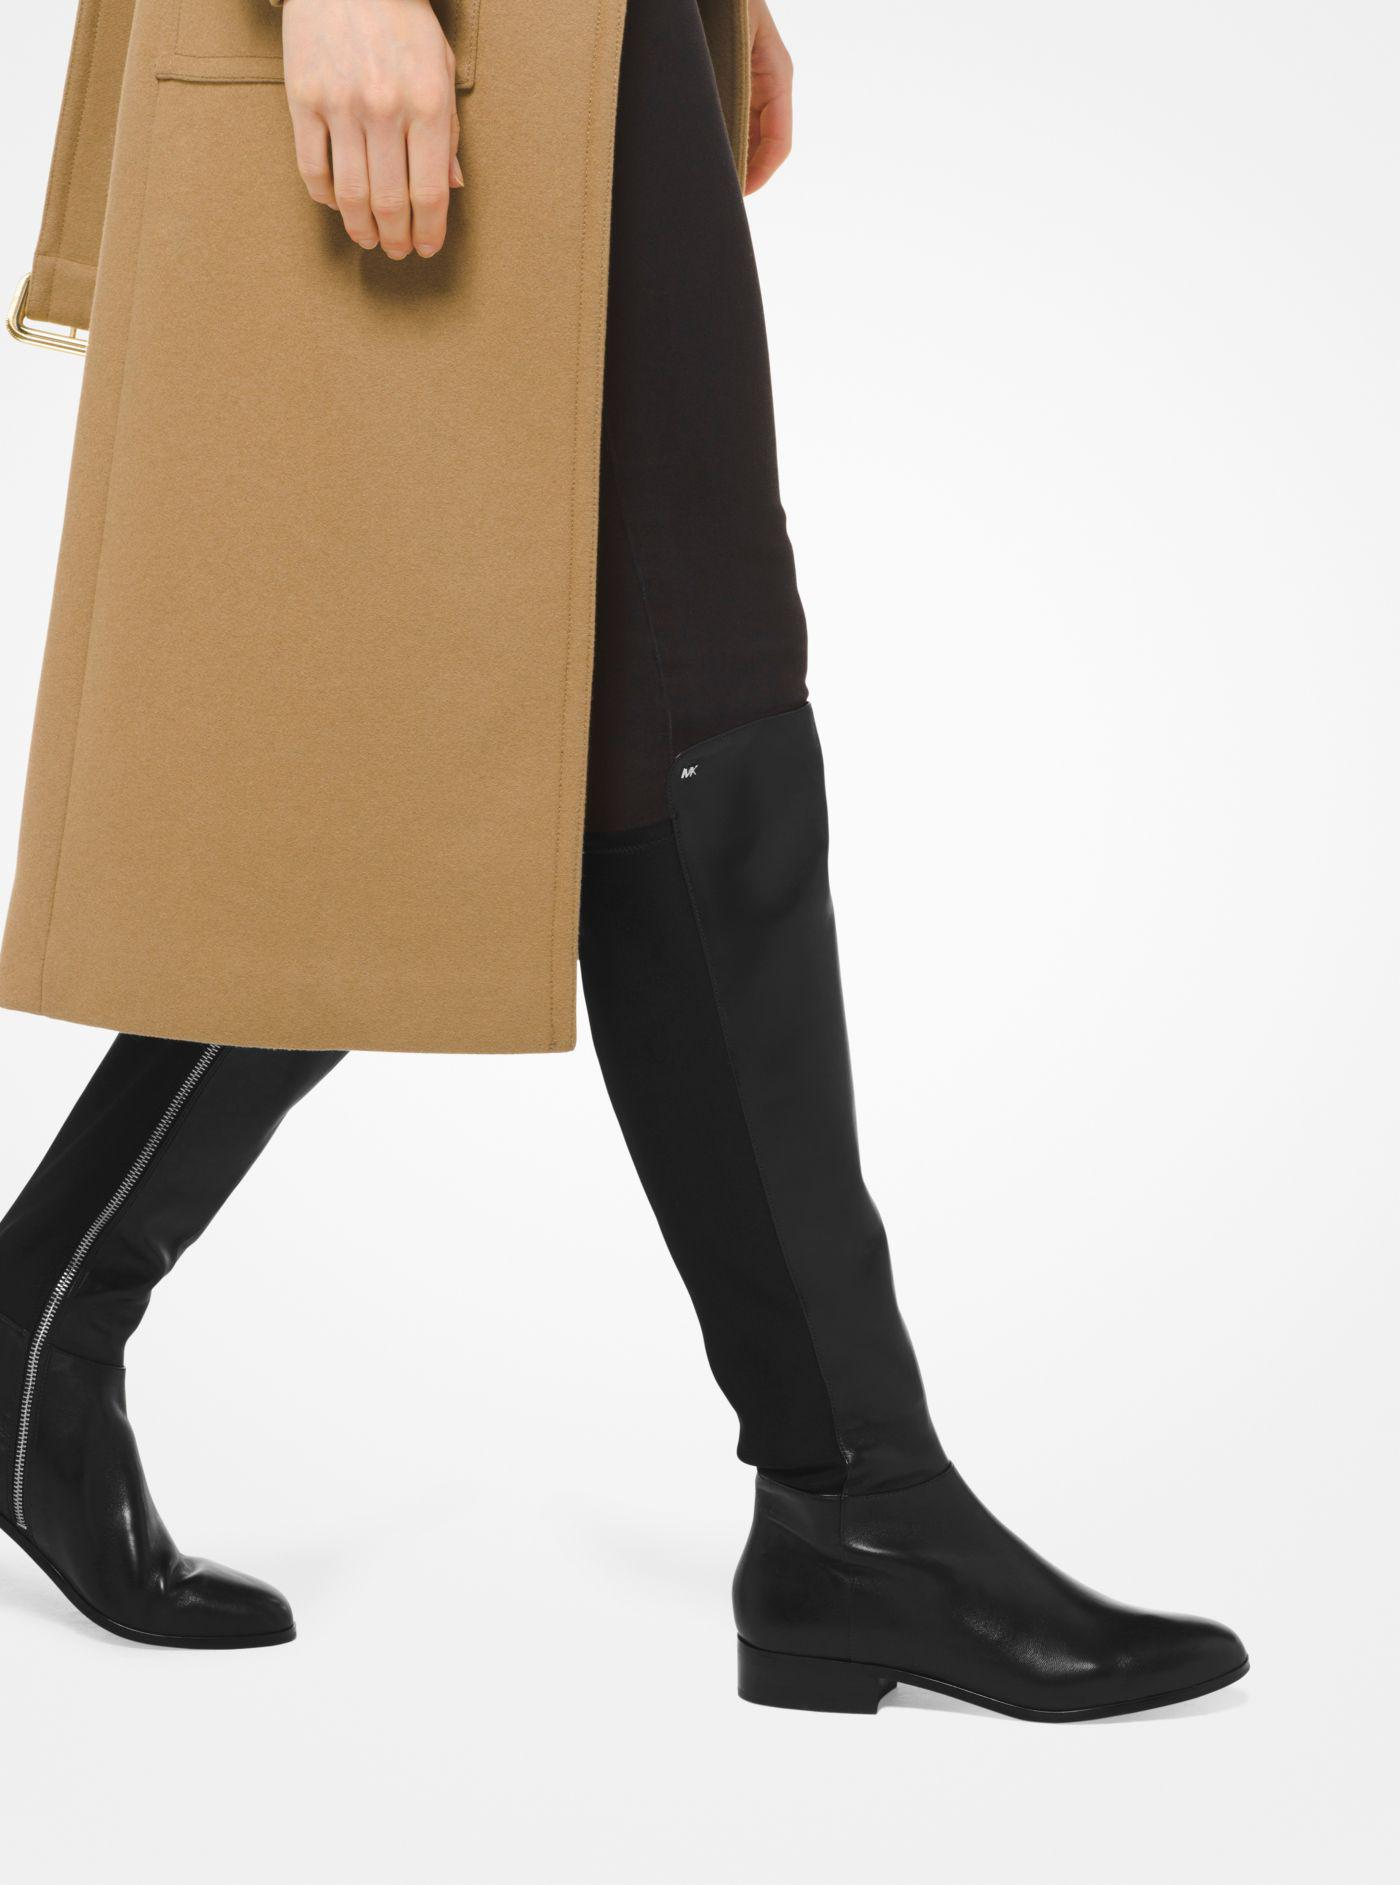 Bromley Leather \u0026 Stretch Tall Boots